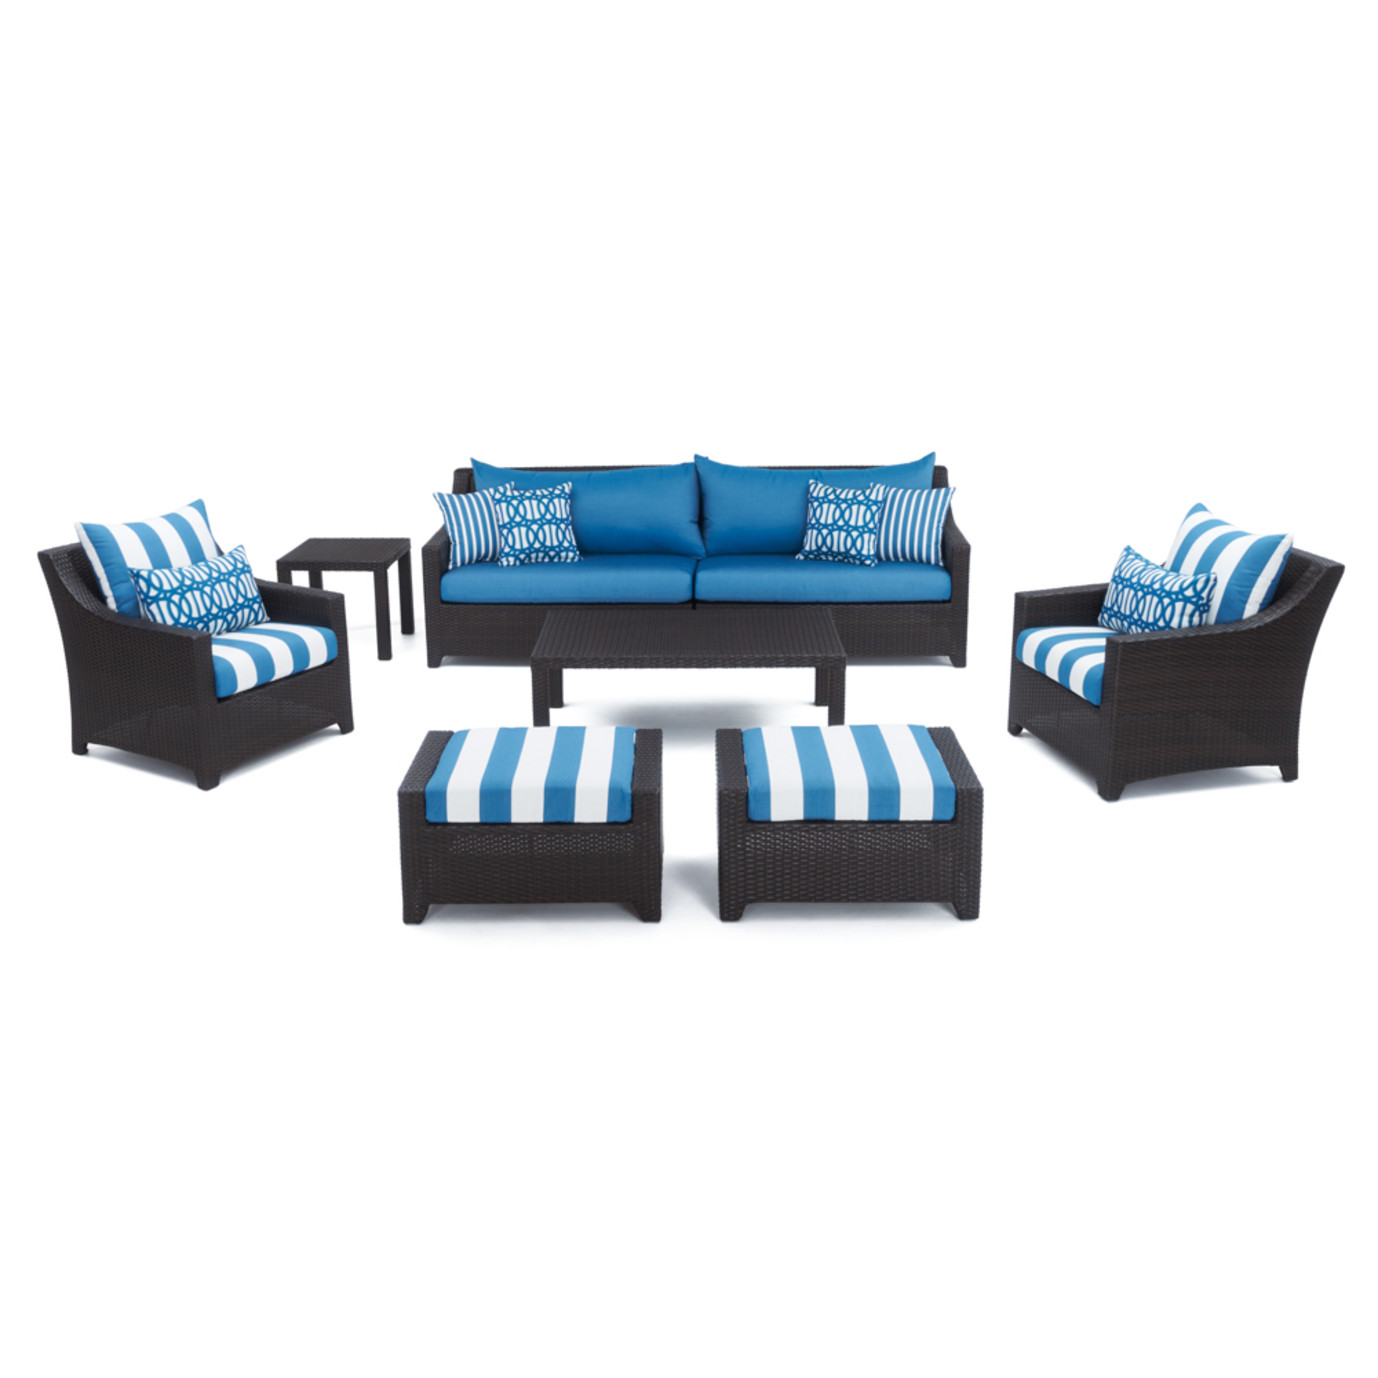 Deco™ 8pc Sofa and Club Chair Set- Regatta Blue